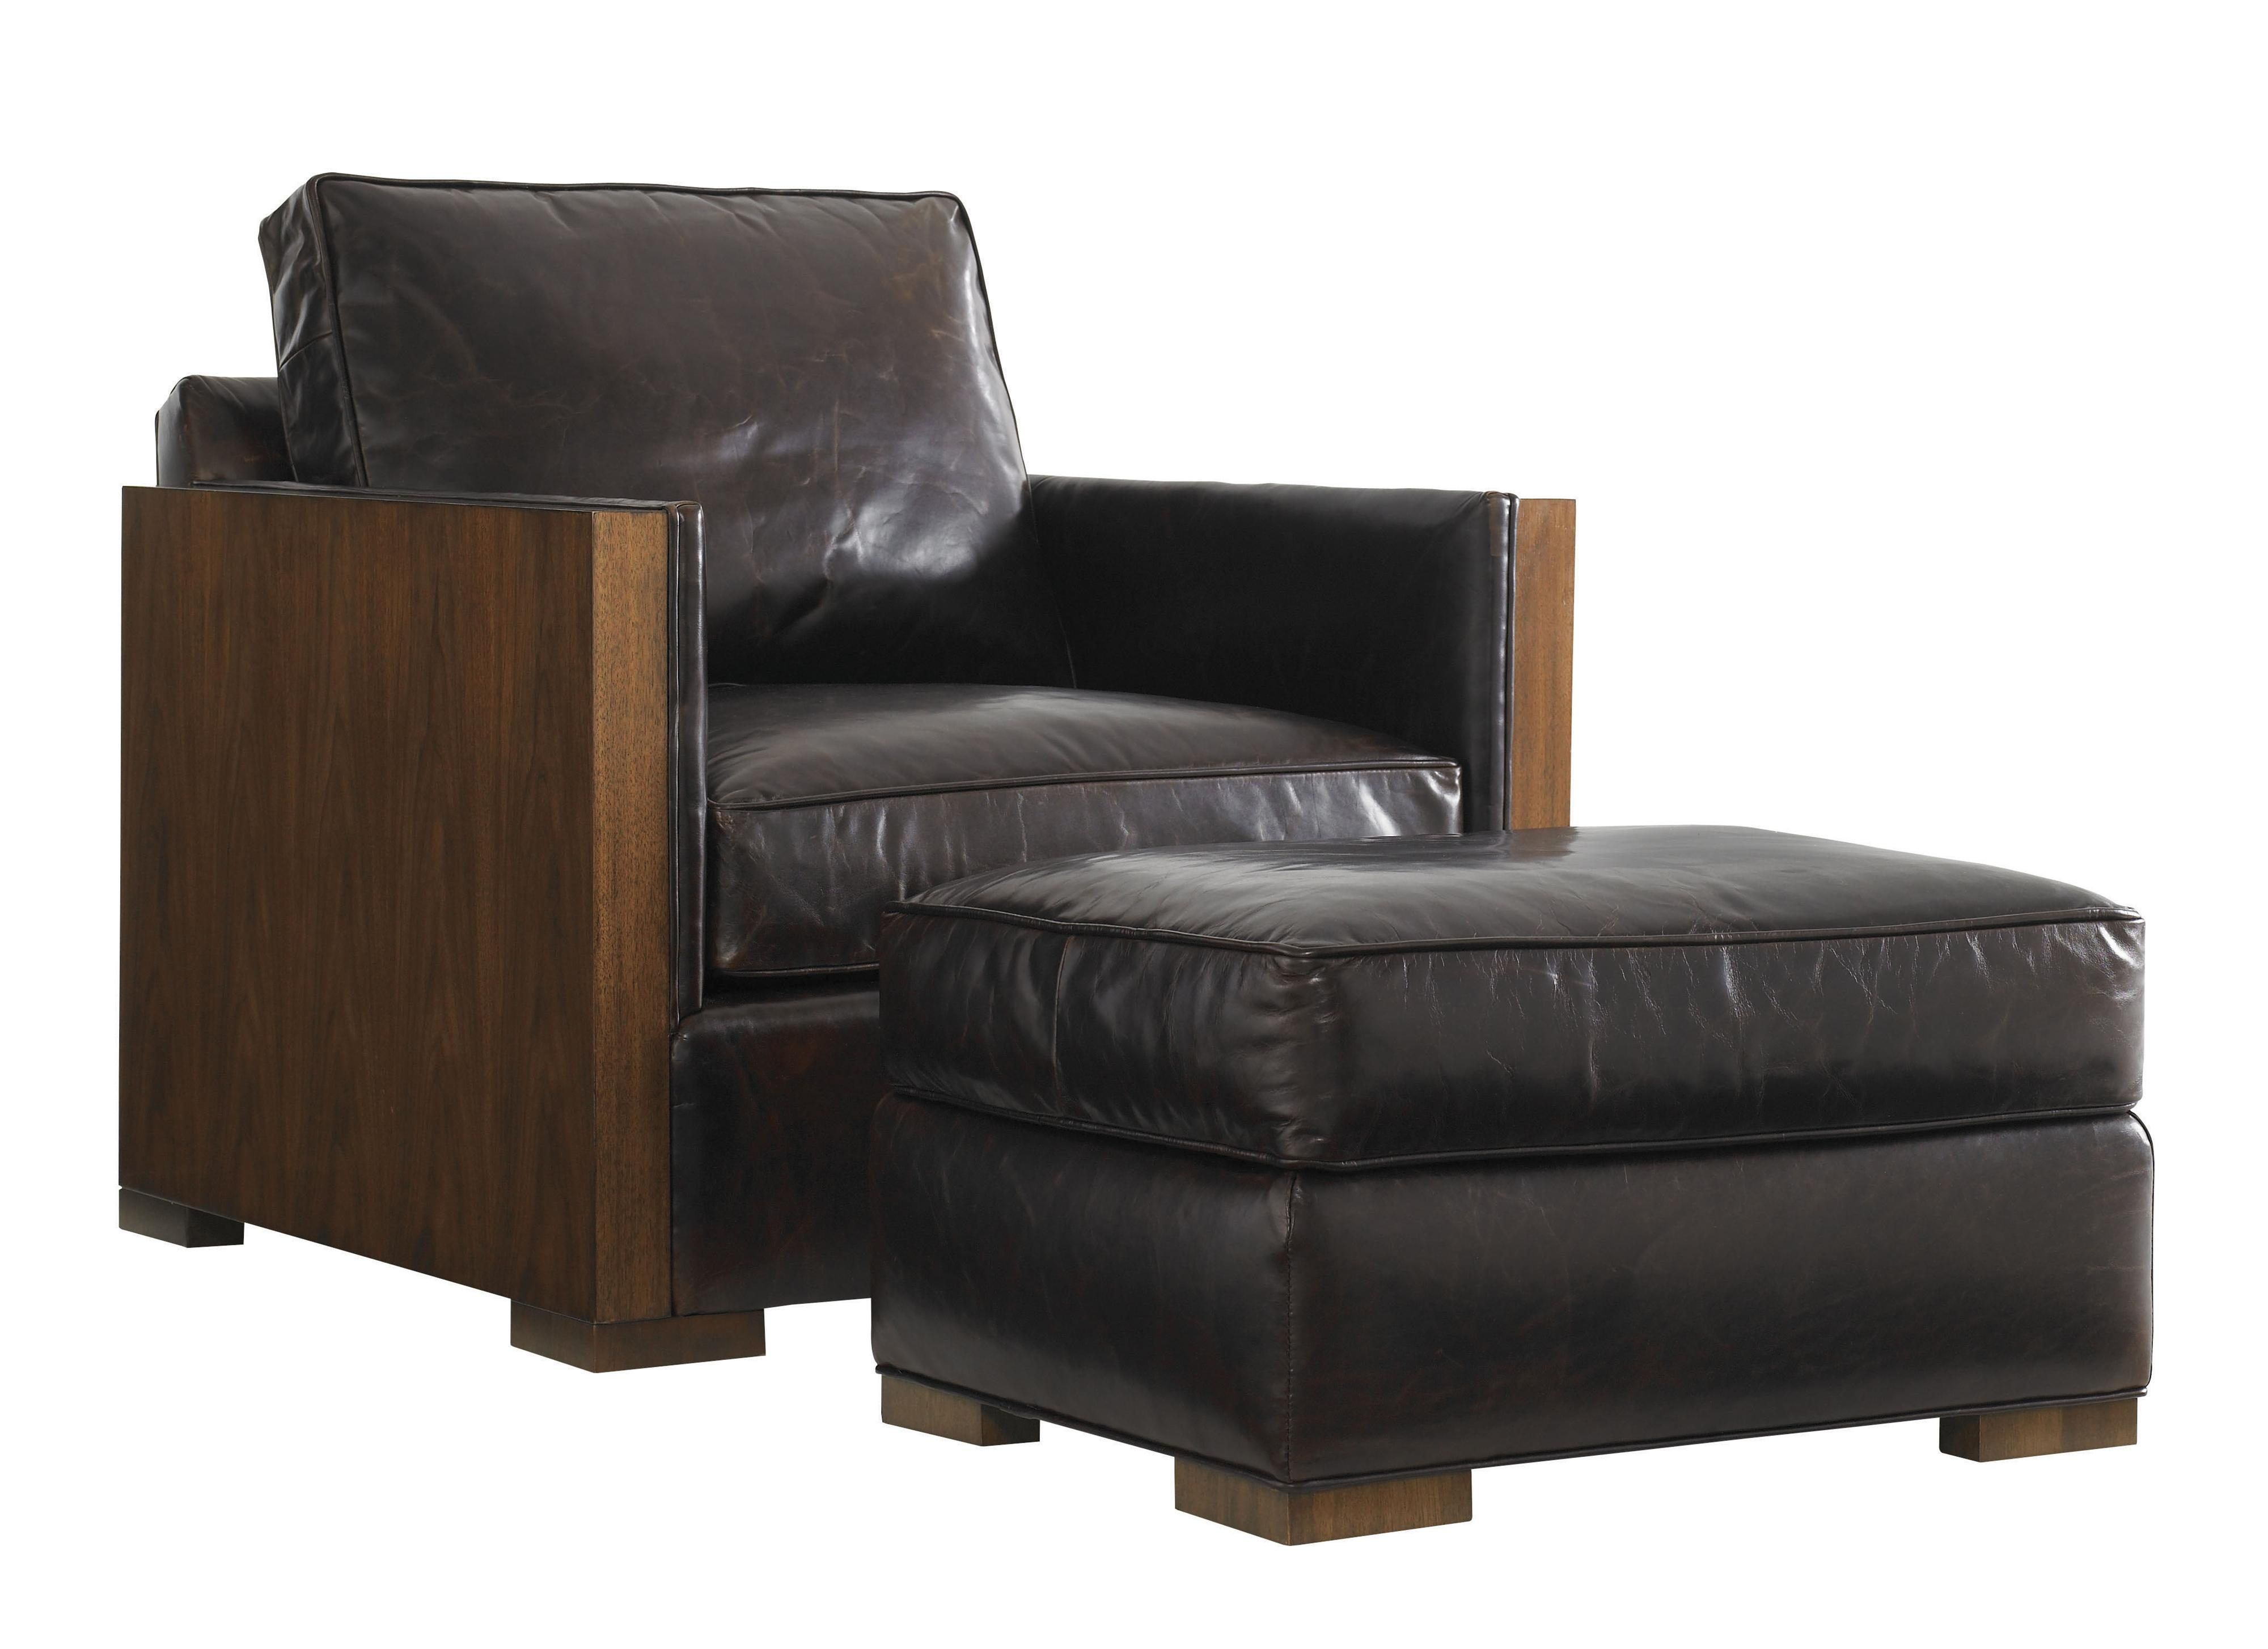 Lexington Tower Place Contemporary Edgemere Chair And Ottoman Belfort Furniture Chair